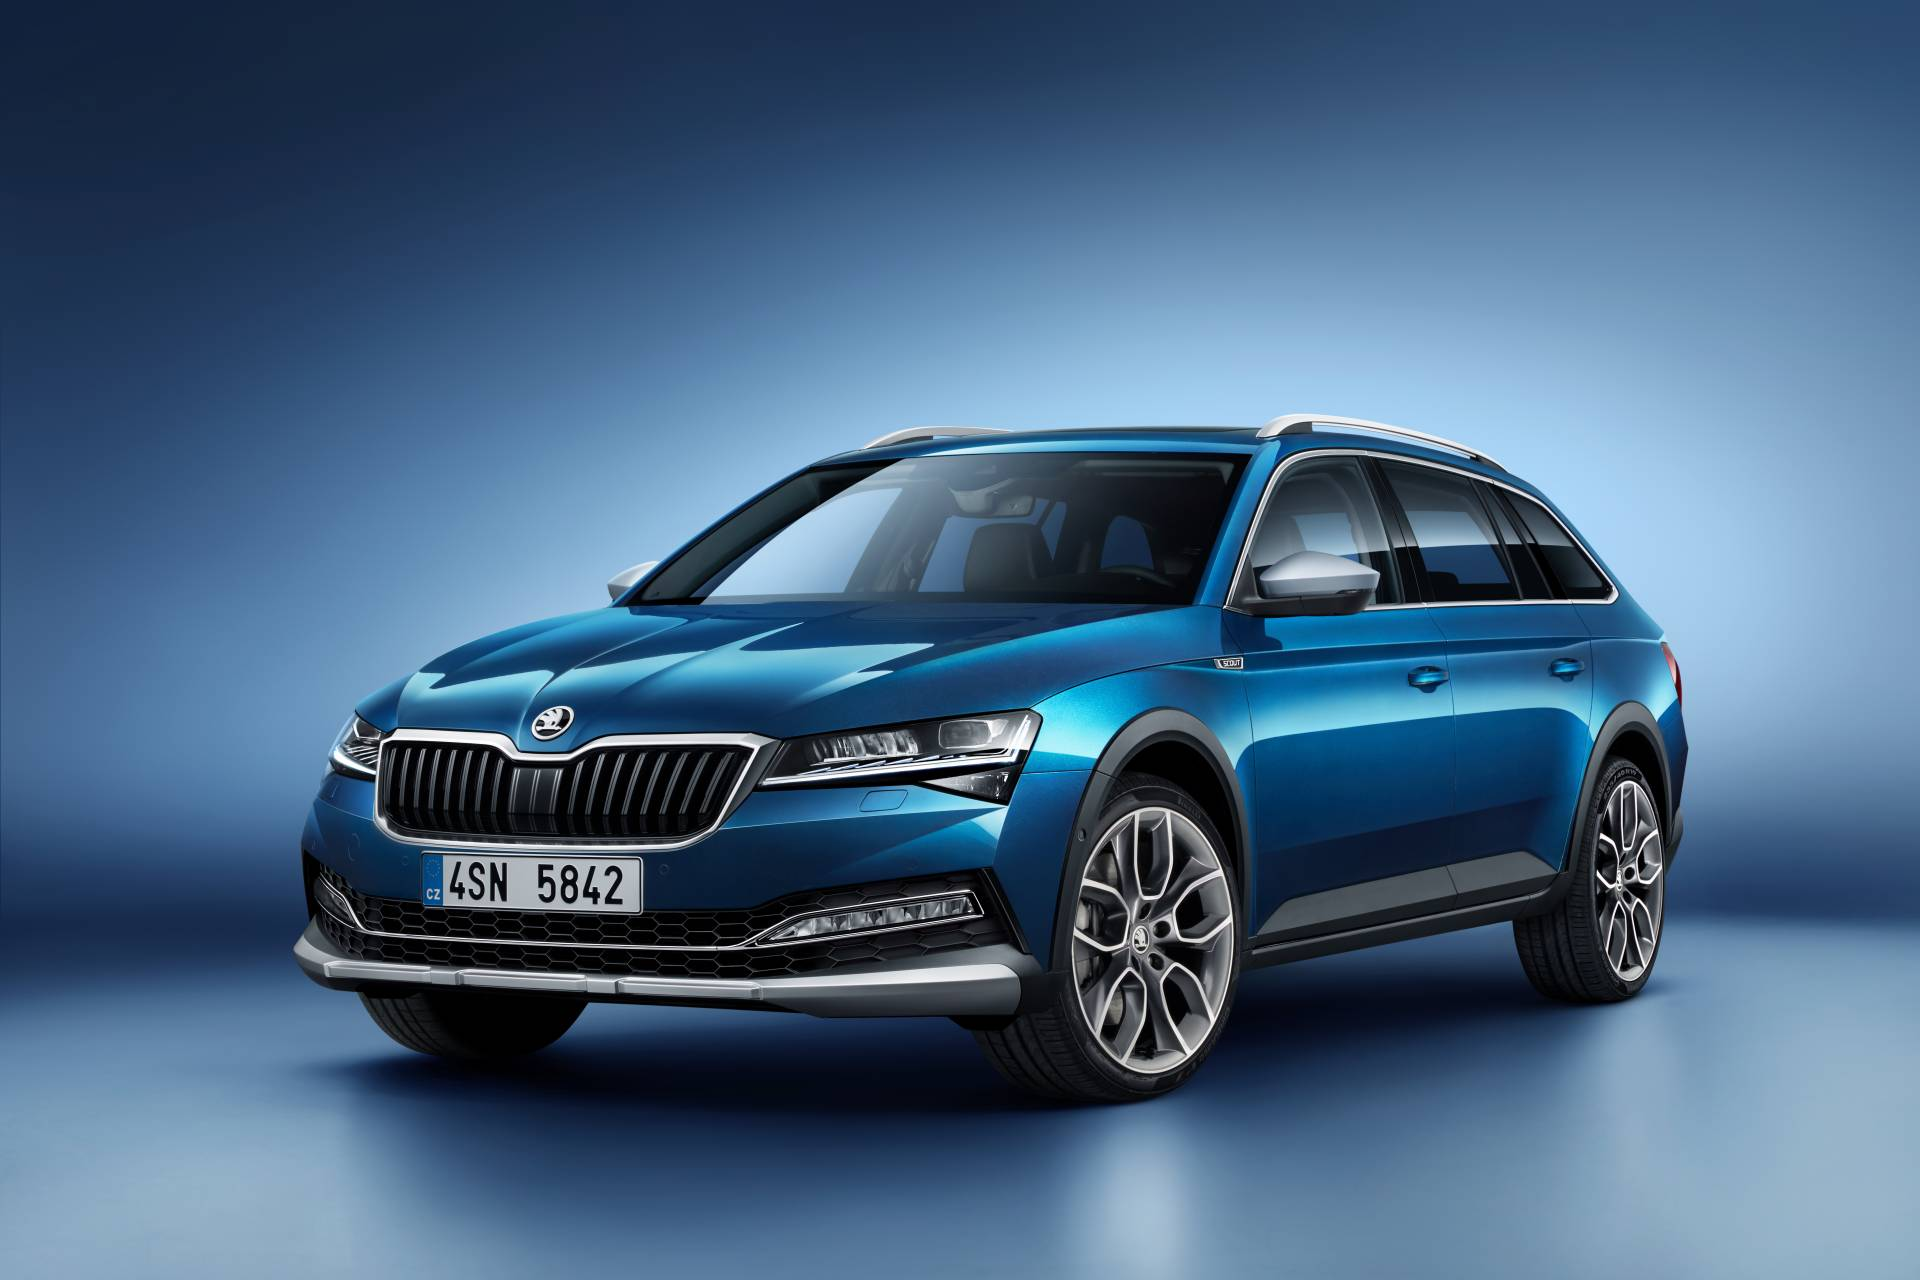 d7b84941-skoda-superb-scout-7